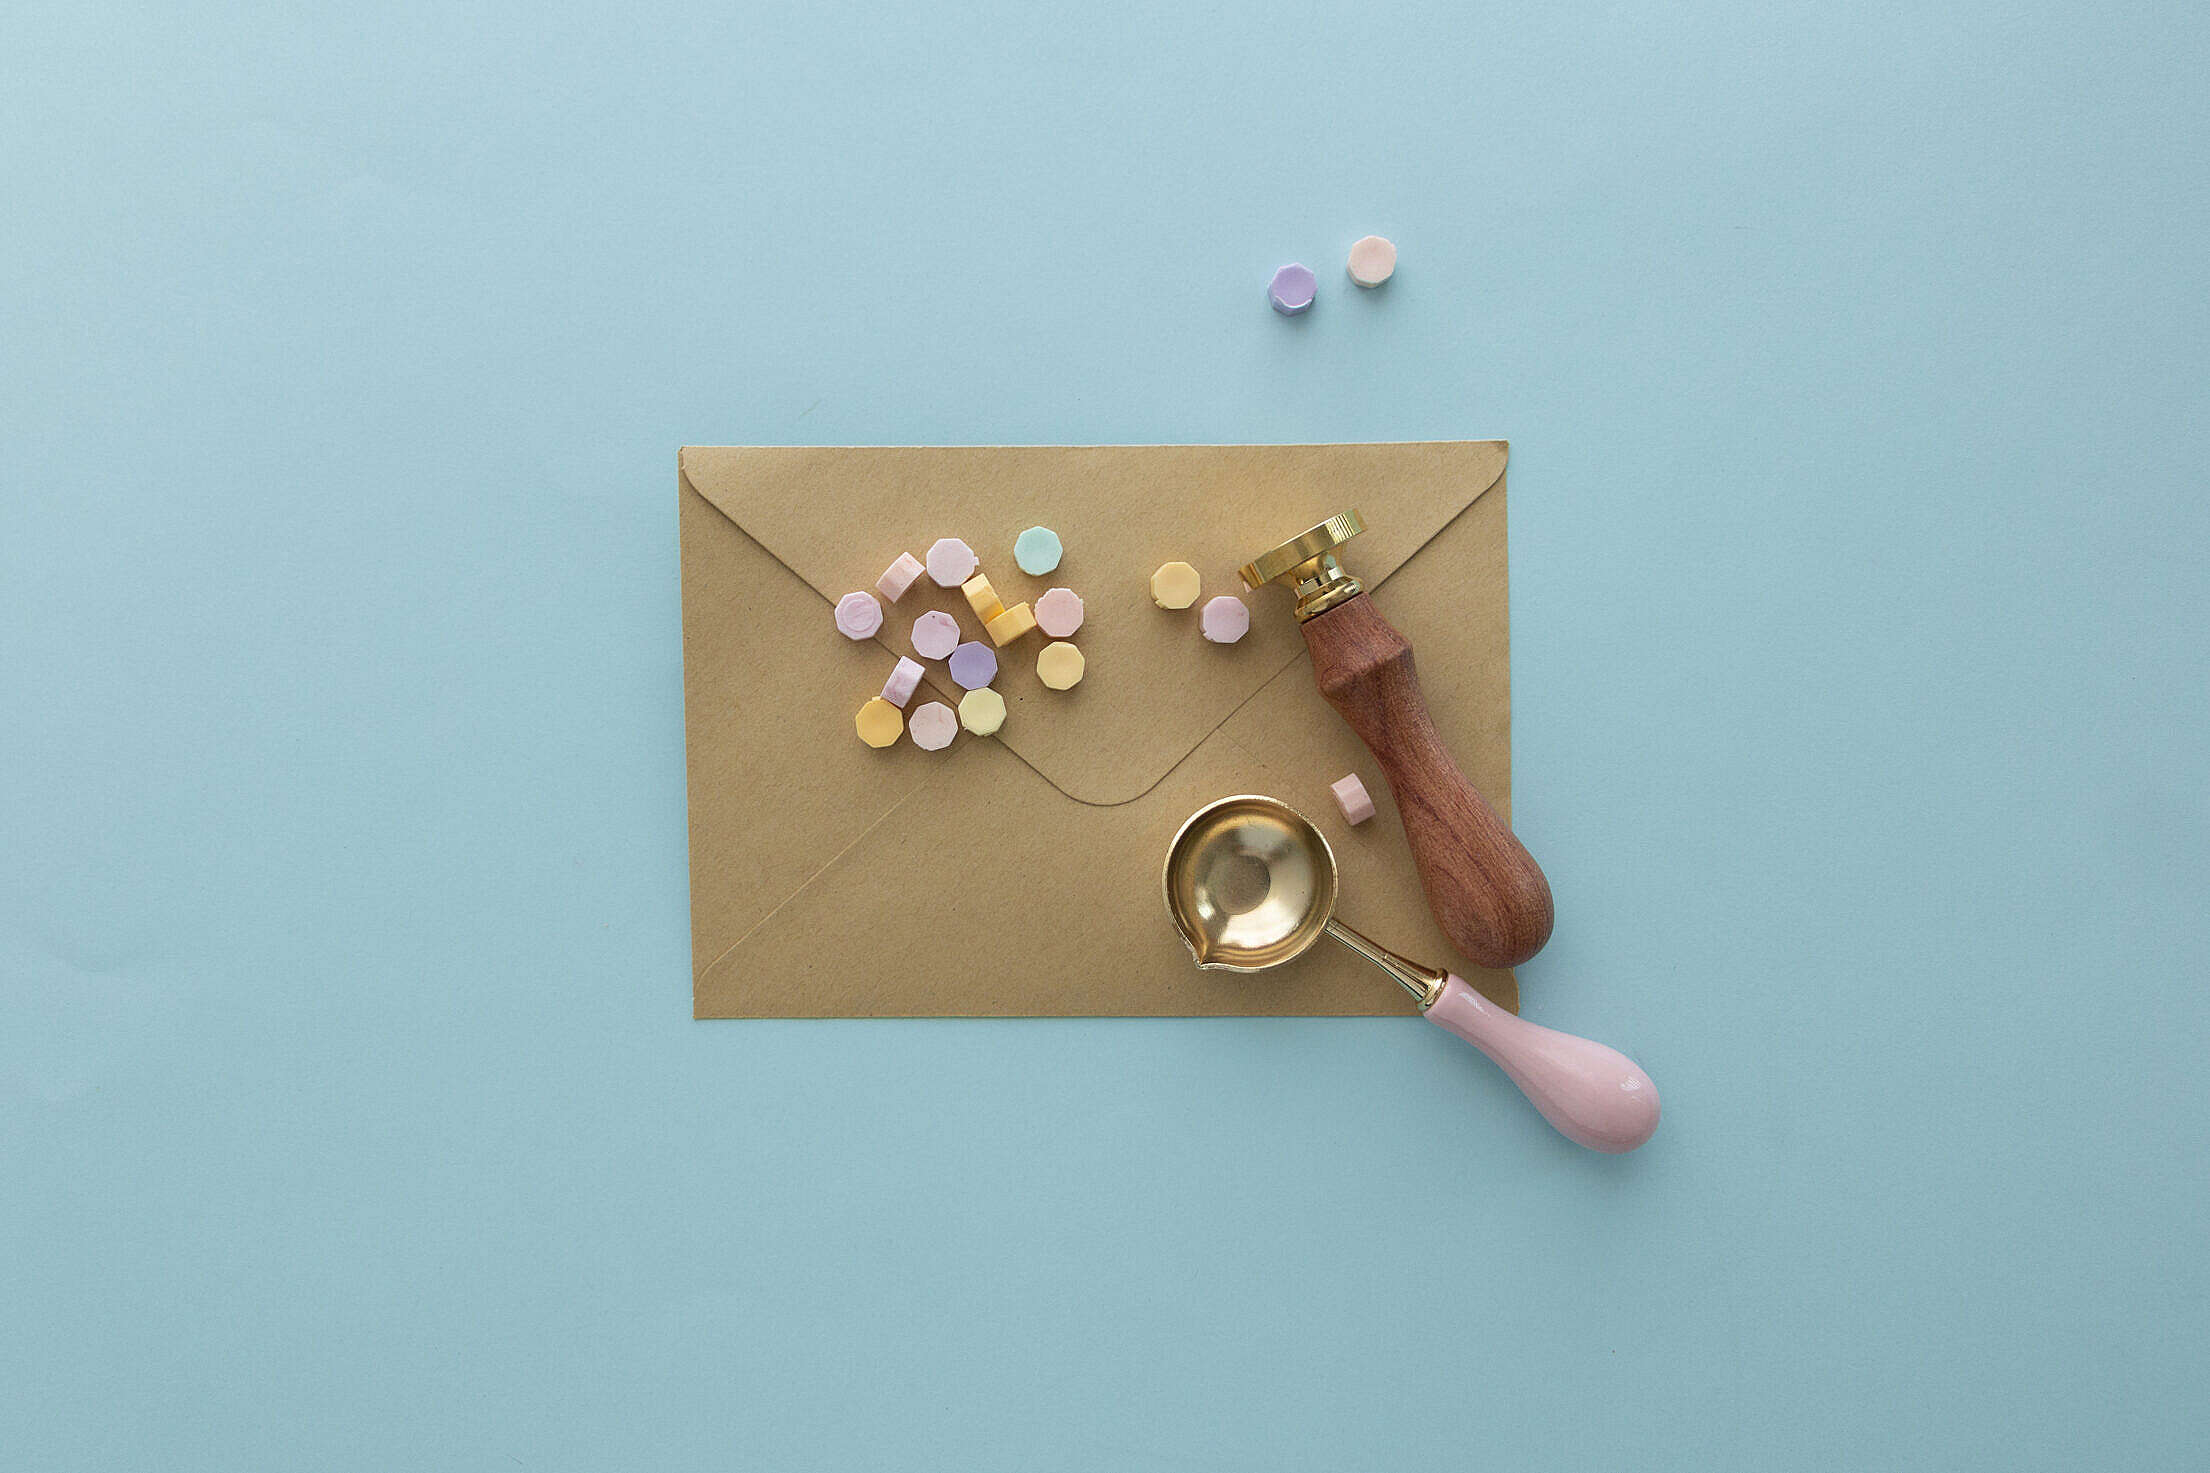 Beauty of Sending a Letter with a Wax Seal Stamp Free Stock Photo